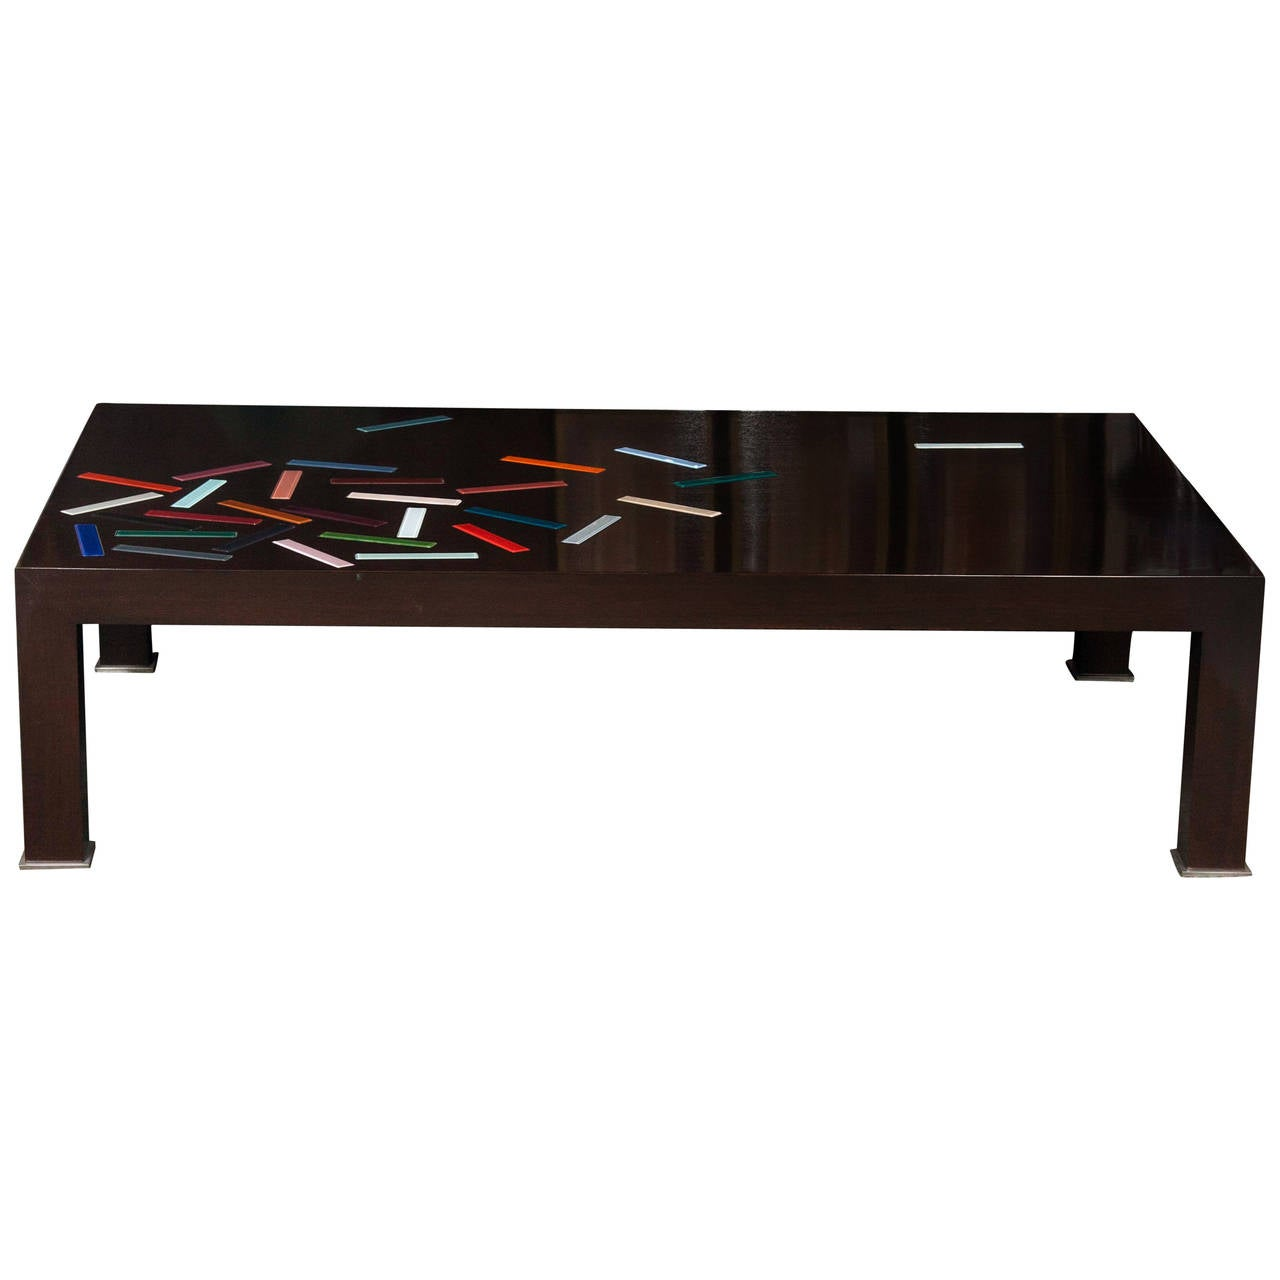 Glass pieces coffee table for sale at 1stdibs for Glass coffee tables for sale